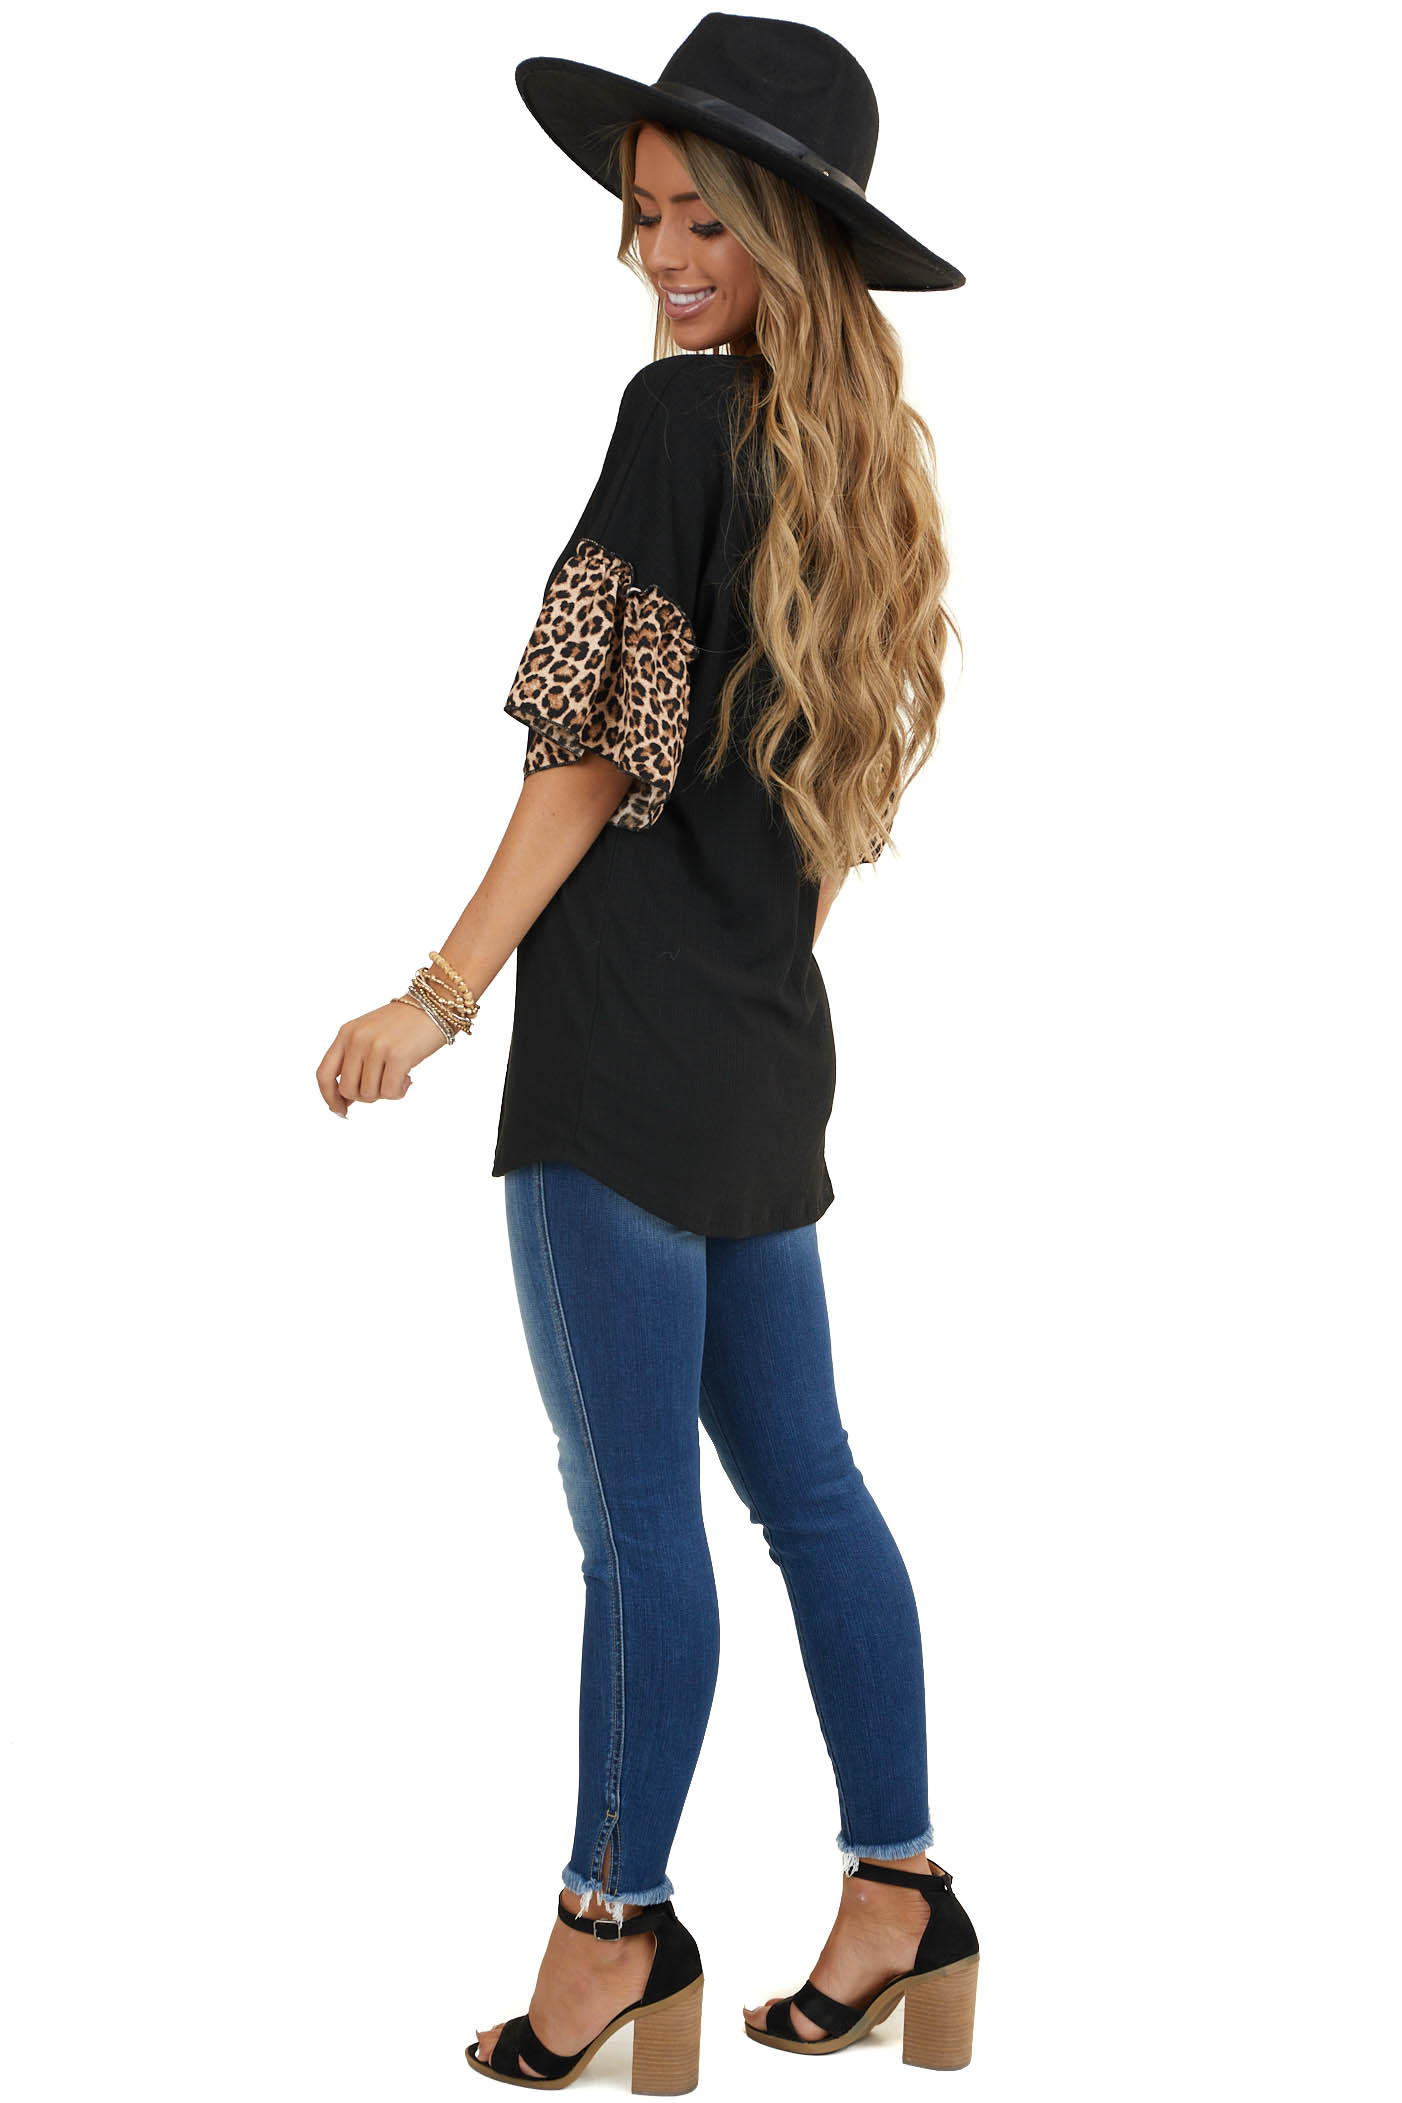 Black Ribbed Tee with Short Ruffle Leopard Print Sleeves